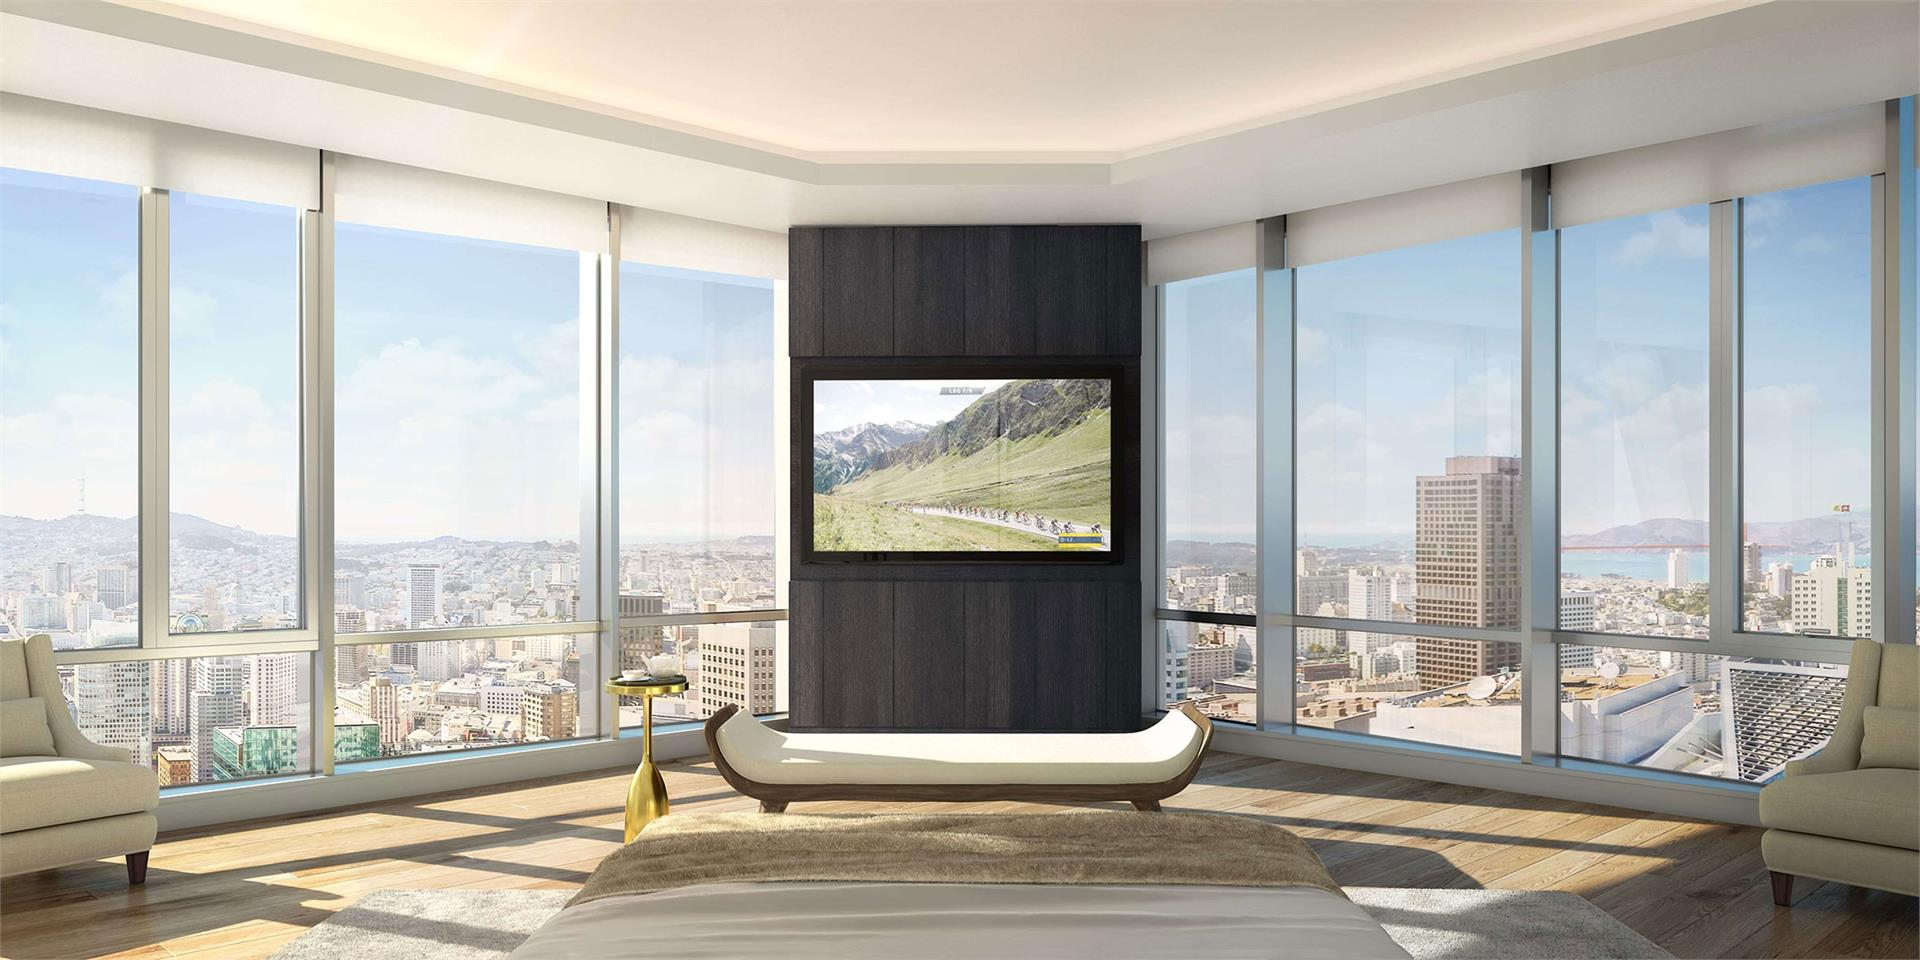 CinemaFrame systems were pre-wired into all 55 luxury units at 181 Fremont in San Francisco.